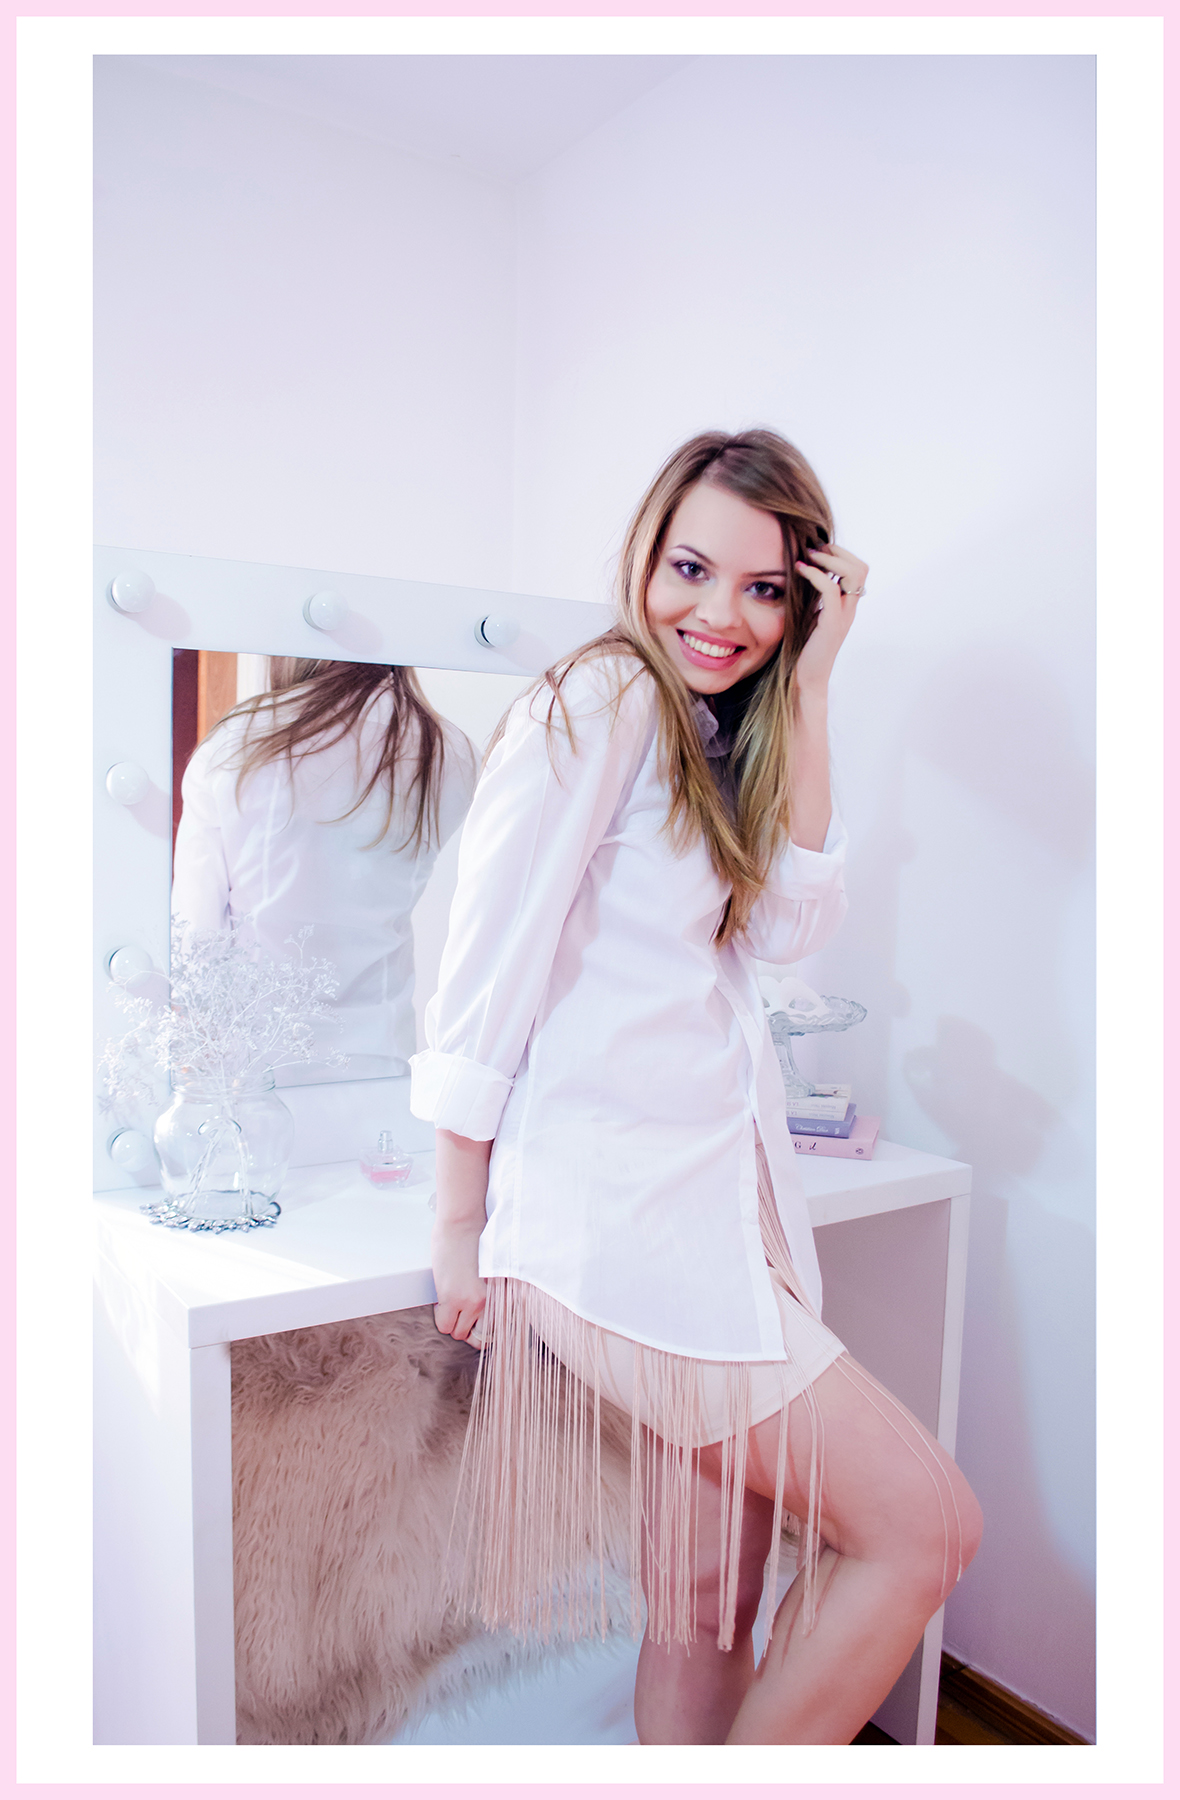 The Story Of The Pink Fringe Skirt And The White Shirt